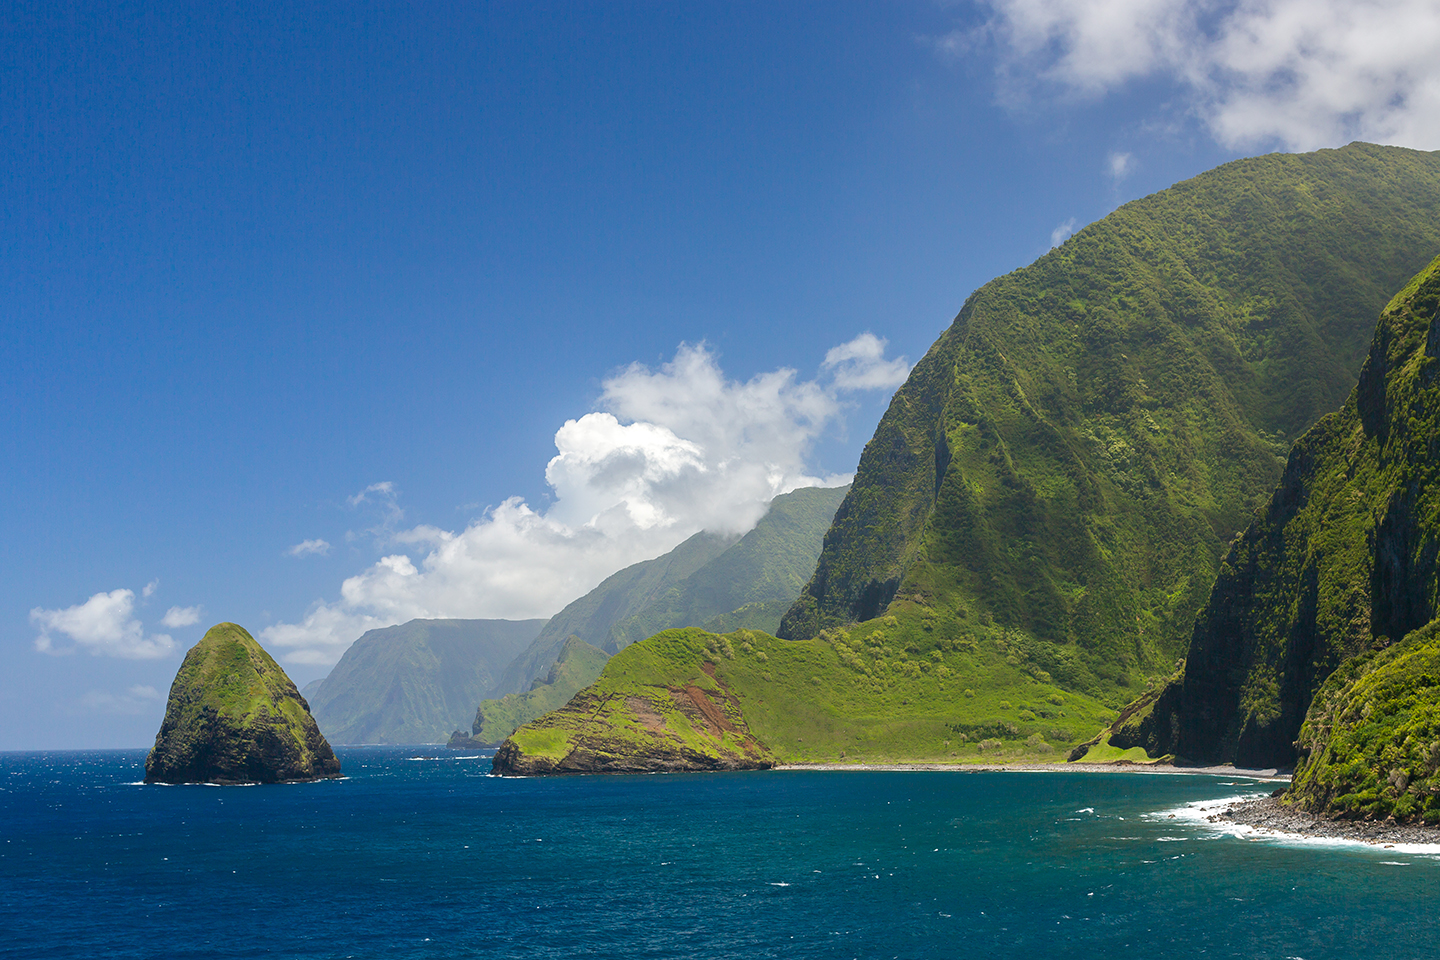 High green cliffs and deep blue sea on the small Hawaiian island of Molokai.